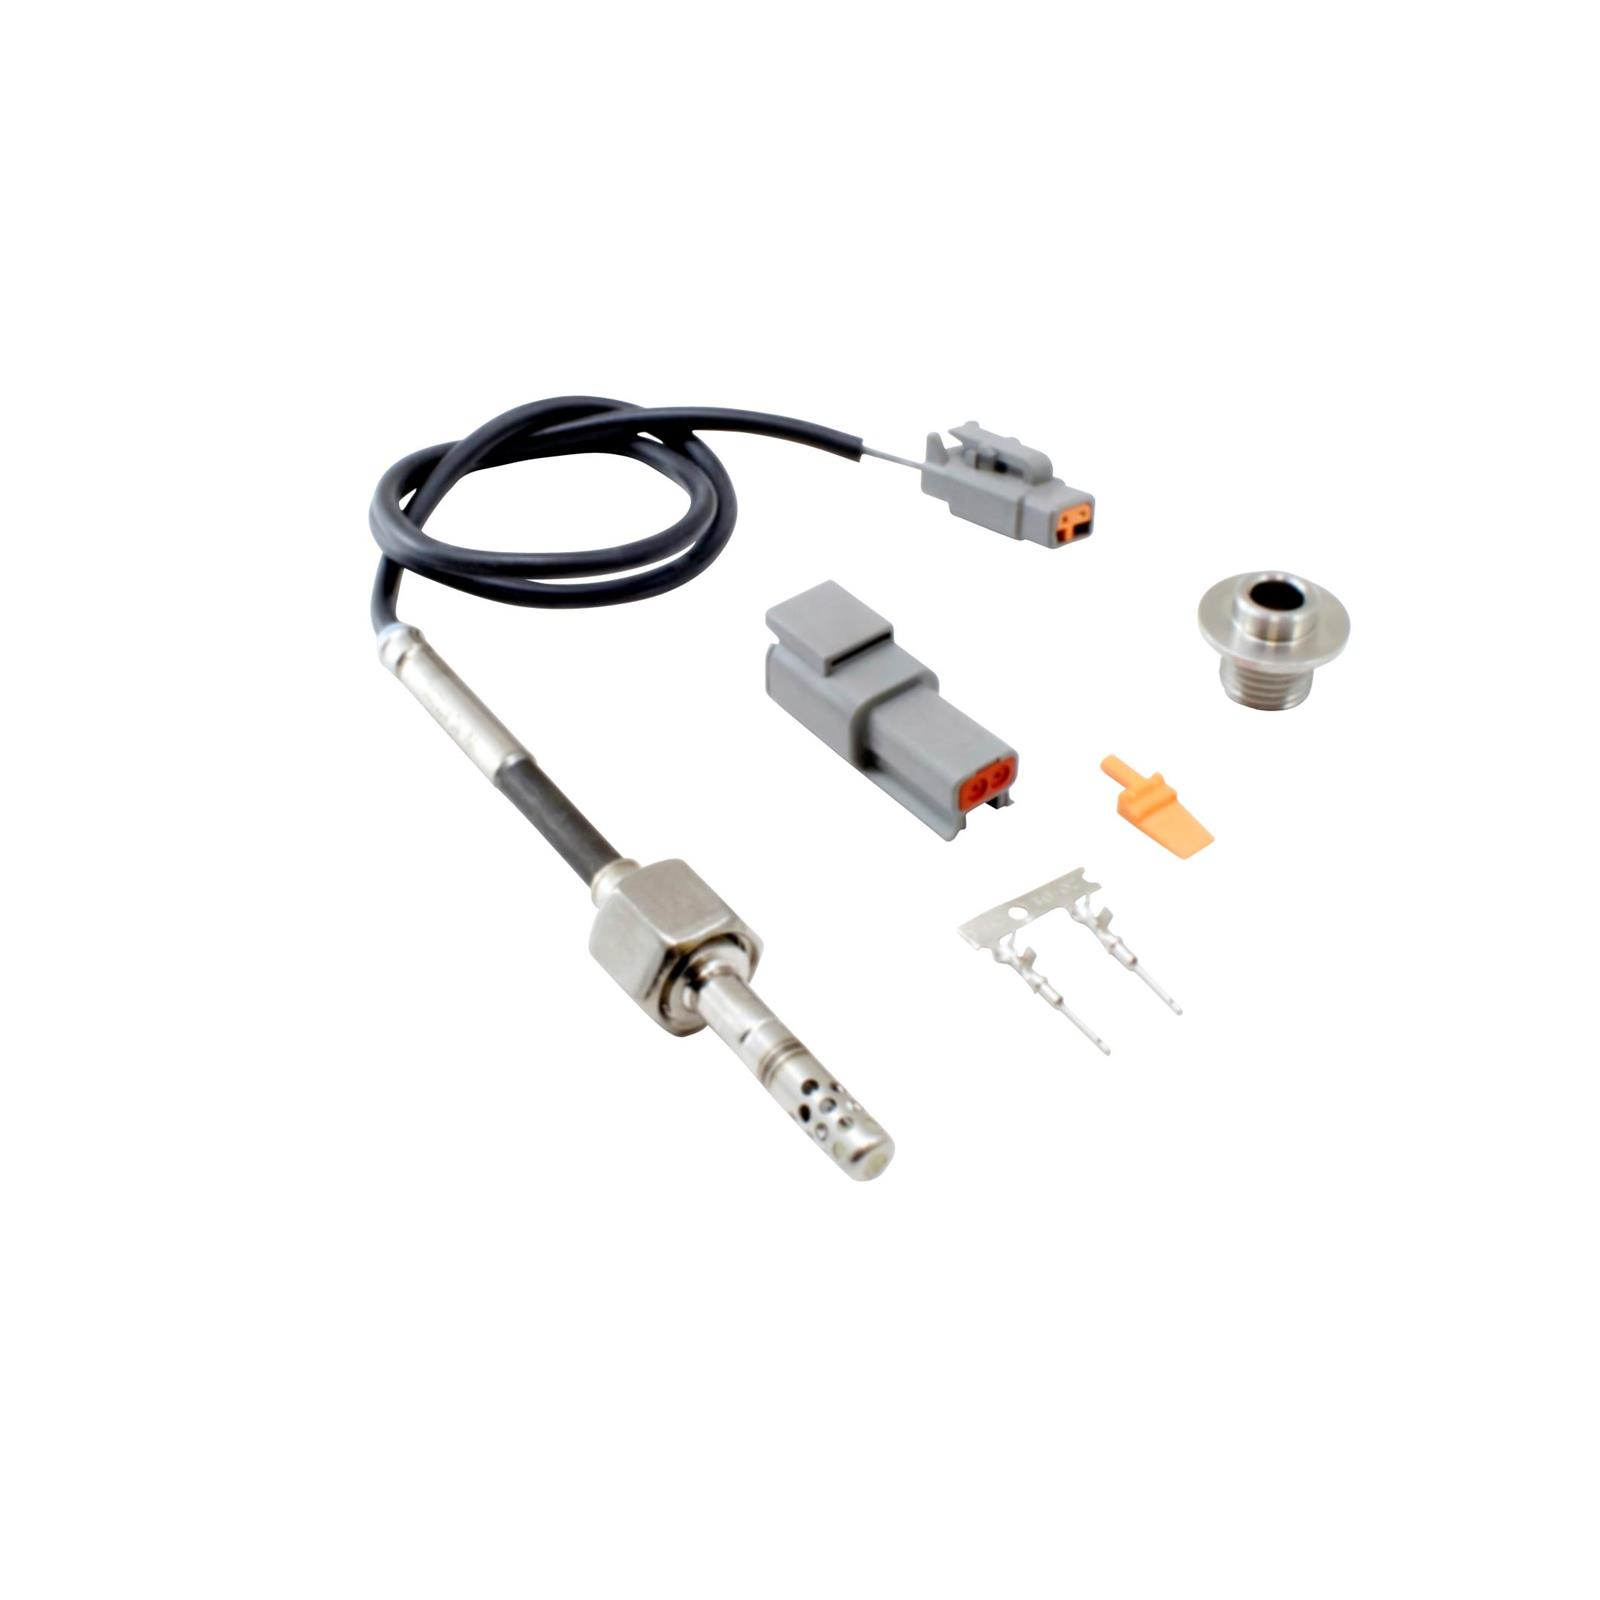 AEM K-Type Thermocouple Wiring Extension Kit aem30-2066